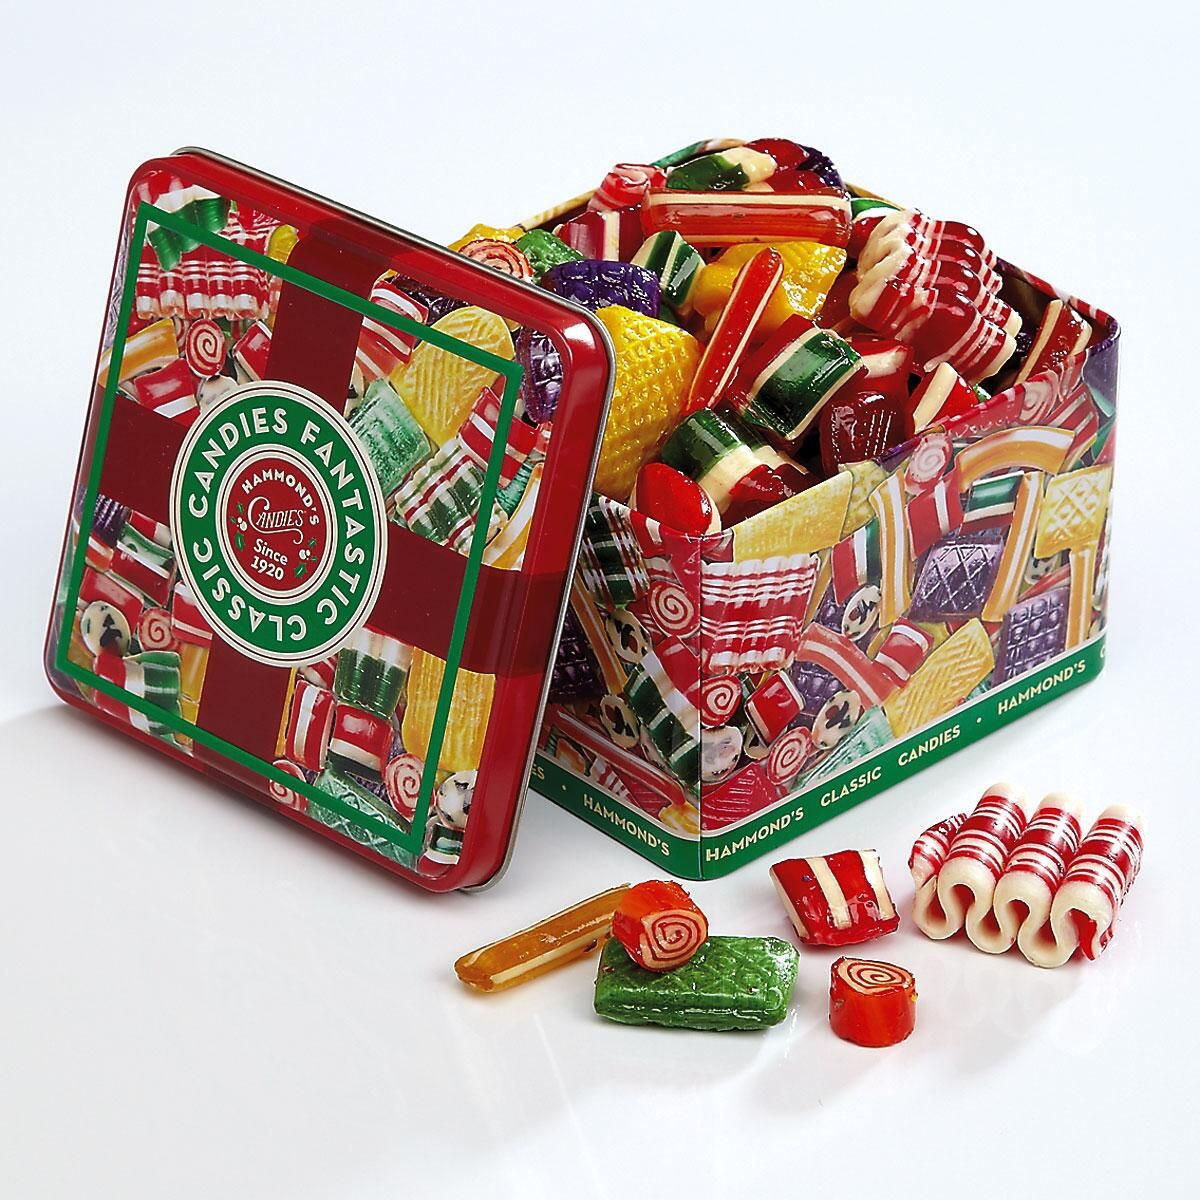 Christmas Candy.Hammonds Classic Christmas Candy